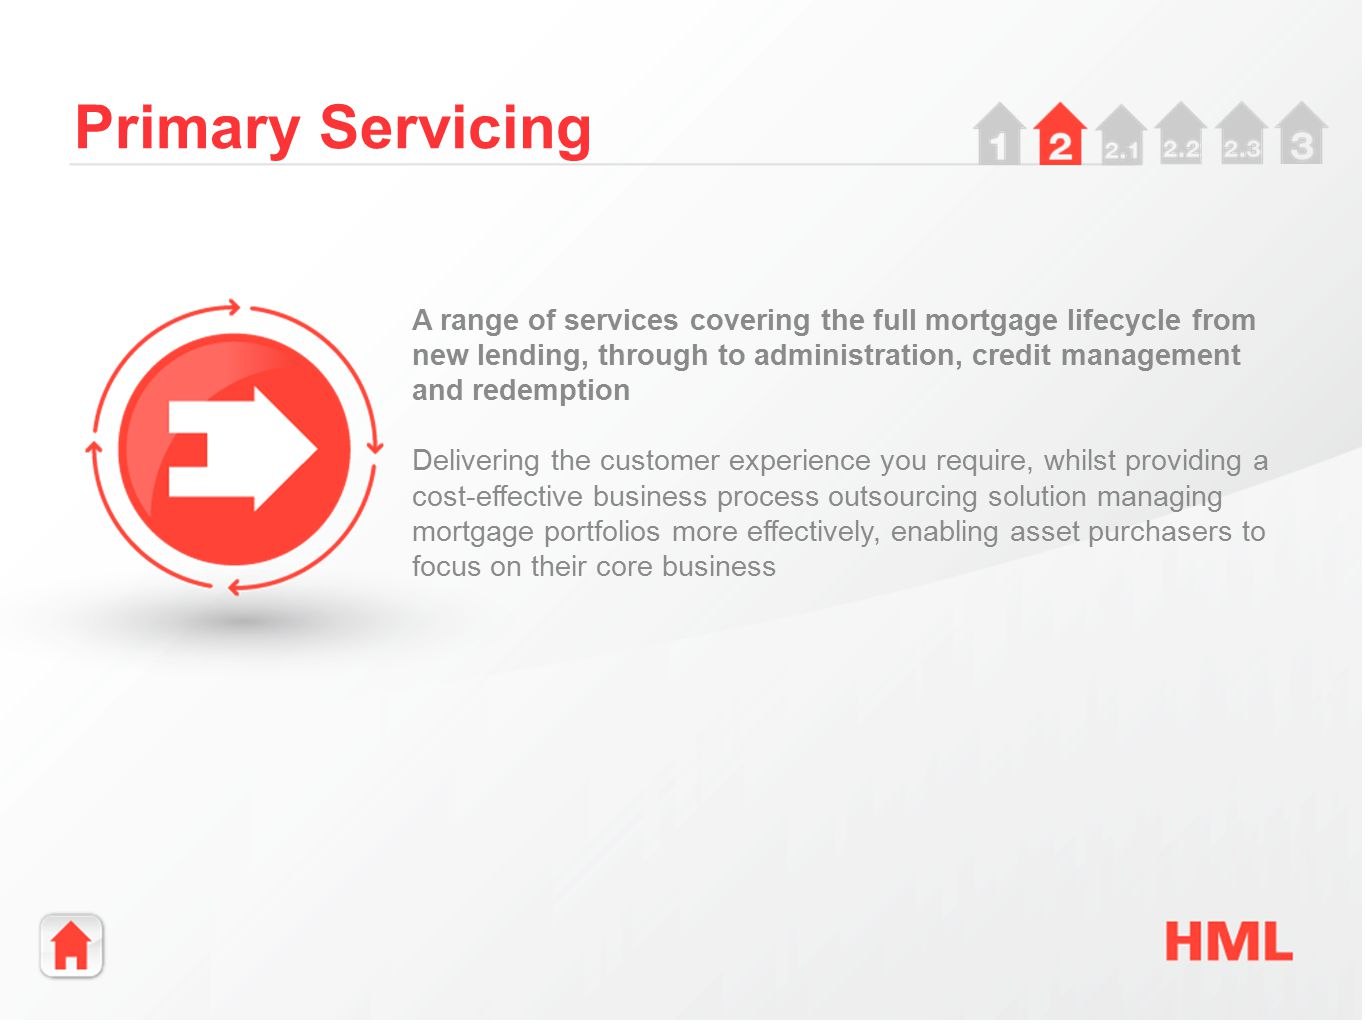 Primary Servicing A range of services covering the full mortgage lifecycle from new lending, through to administration, credit management and redemption Delivering the customer experience you require, whilst providing a cost-effective business process outsourcing solution managing mortgage portfolios more effectively, enabling asset purchasers to focus on their core business